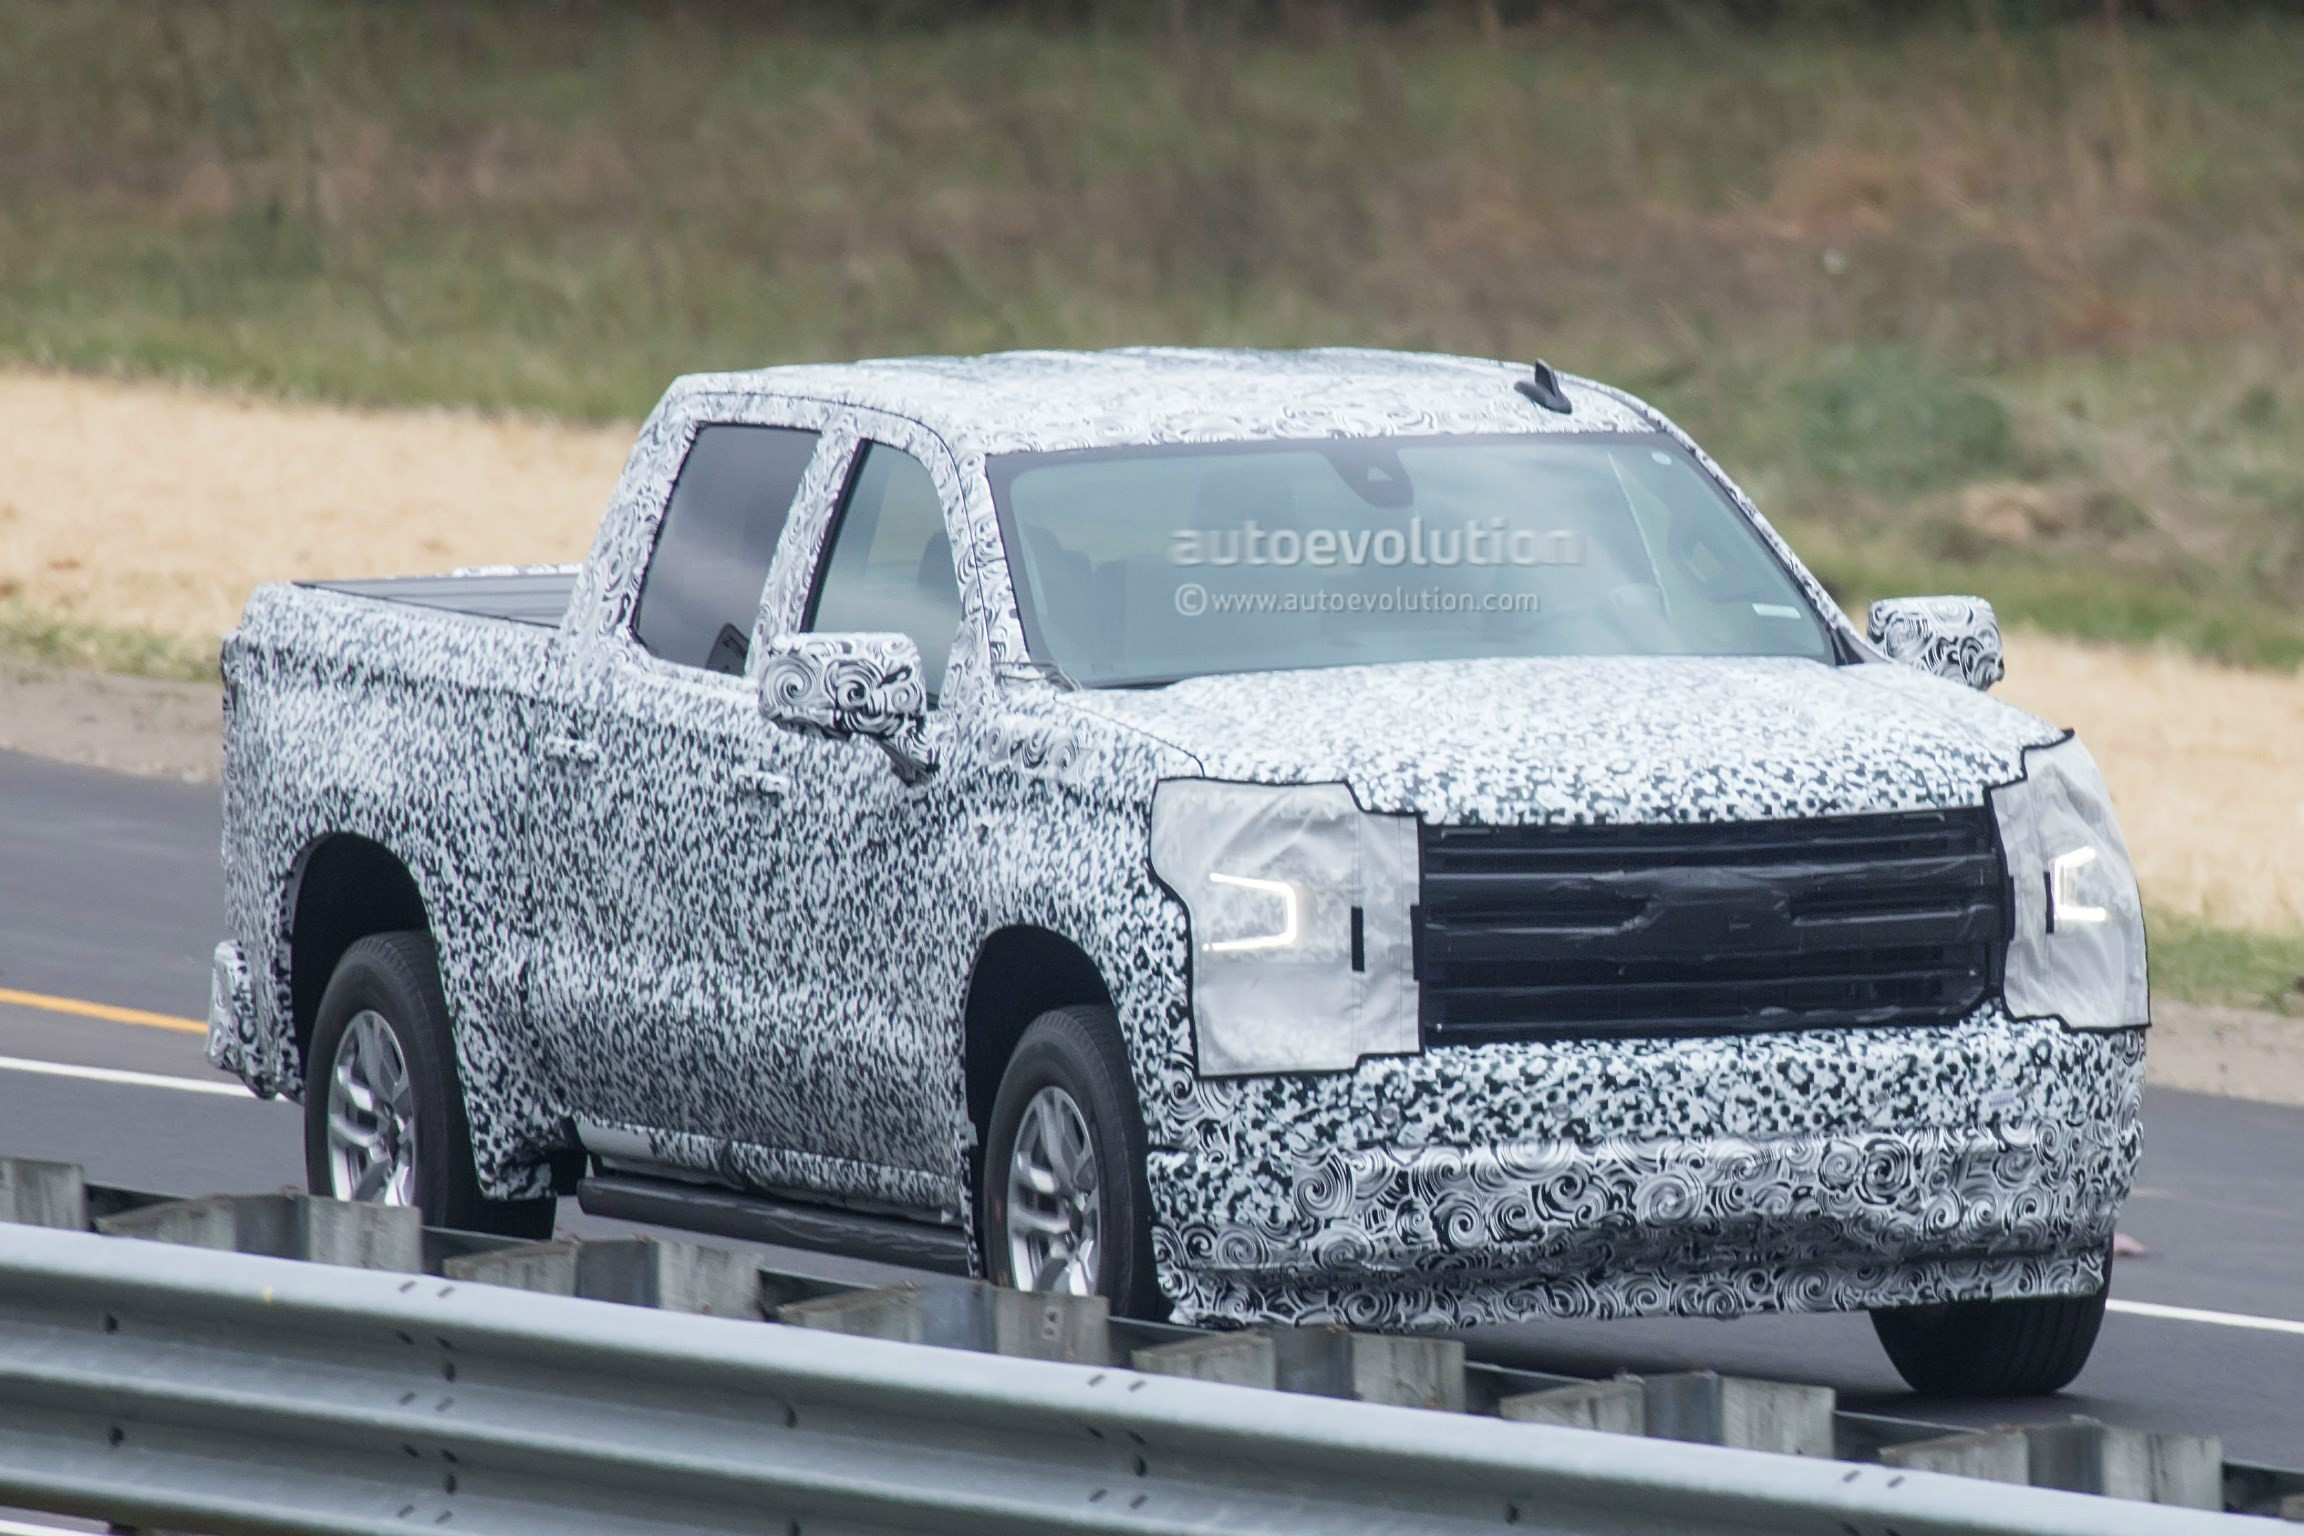 50 New 2019 Chevrolet Silverado Spy Photos Release with 2019 Chevrolet Silverado Spy Photos